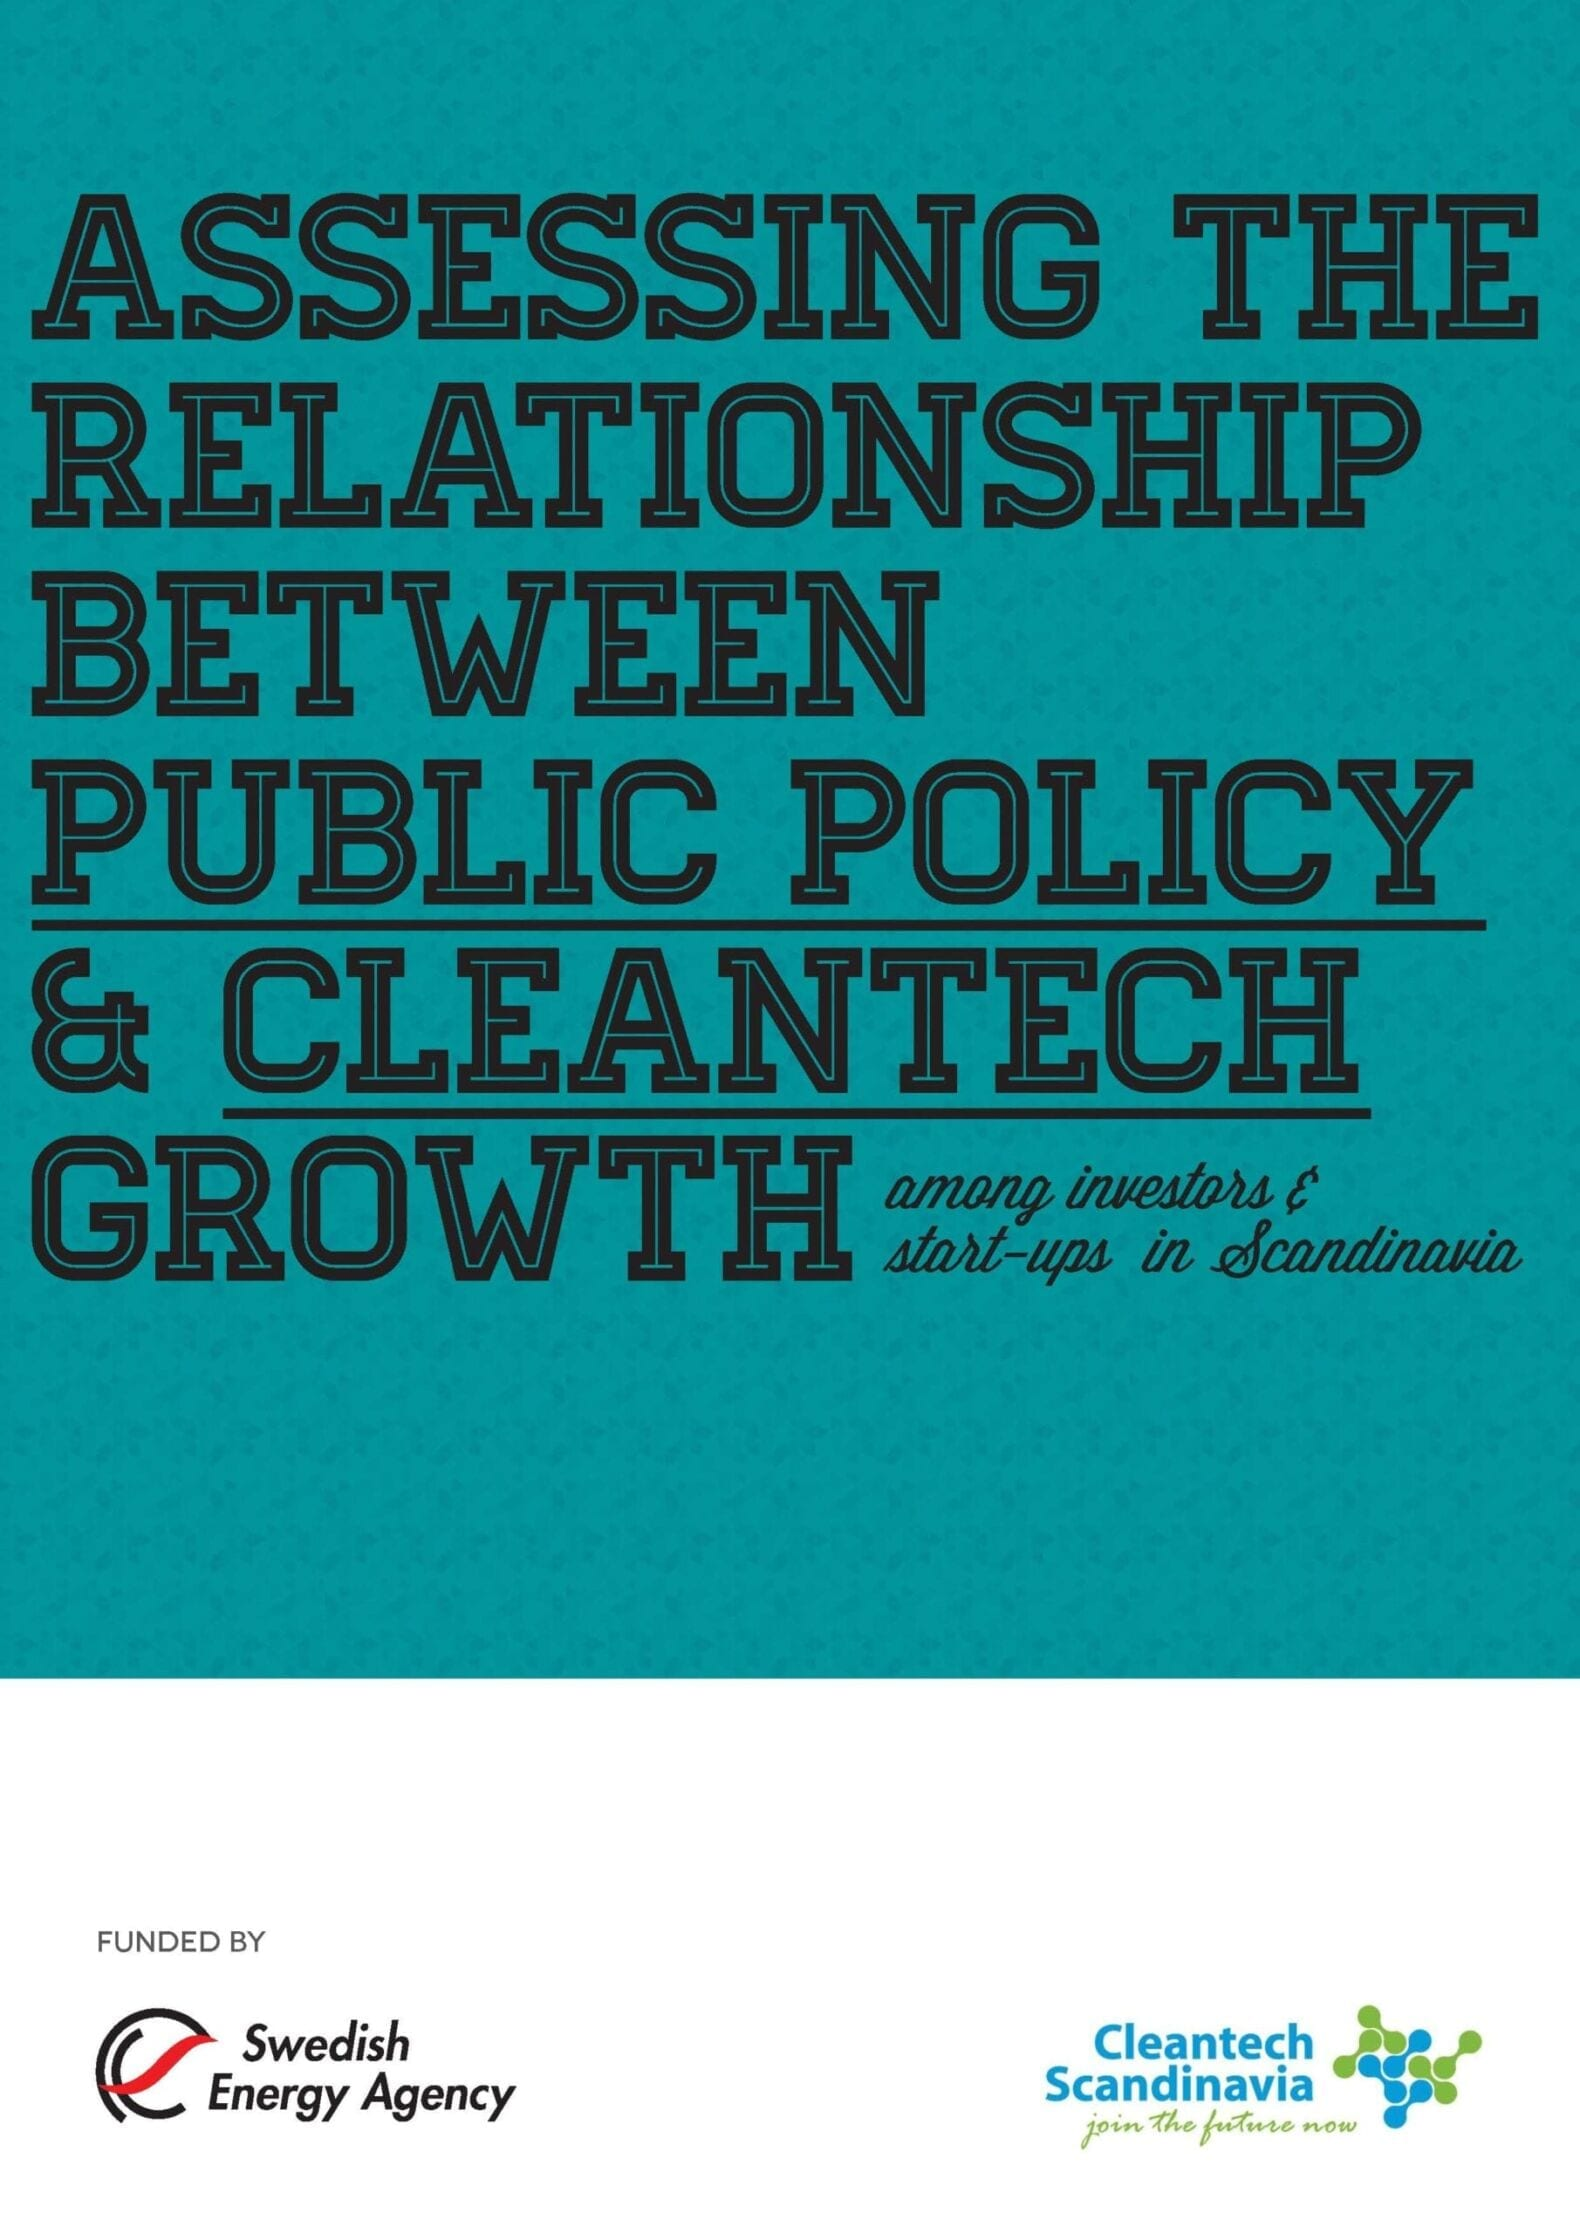 Public Policy & Cleantech Growth